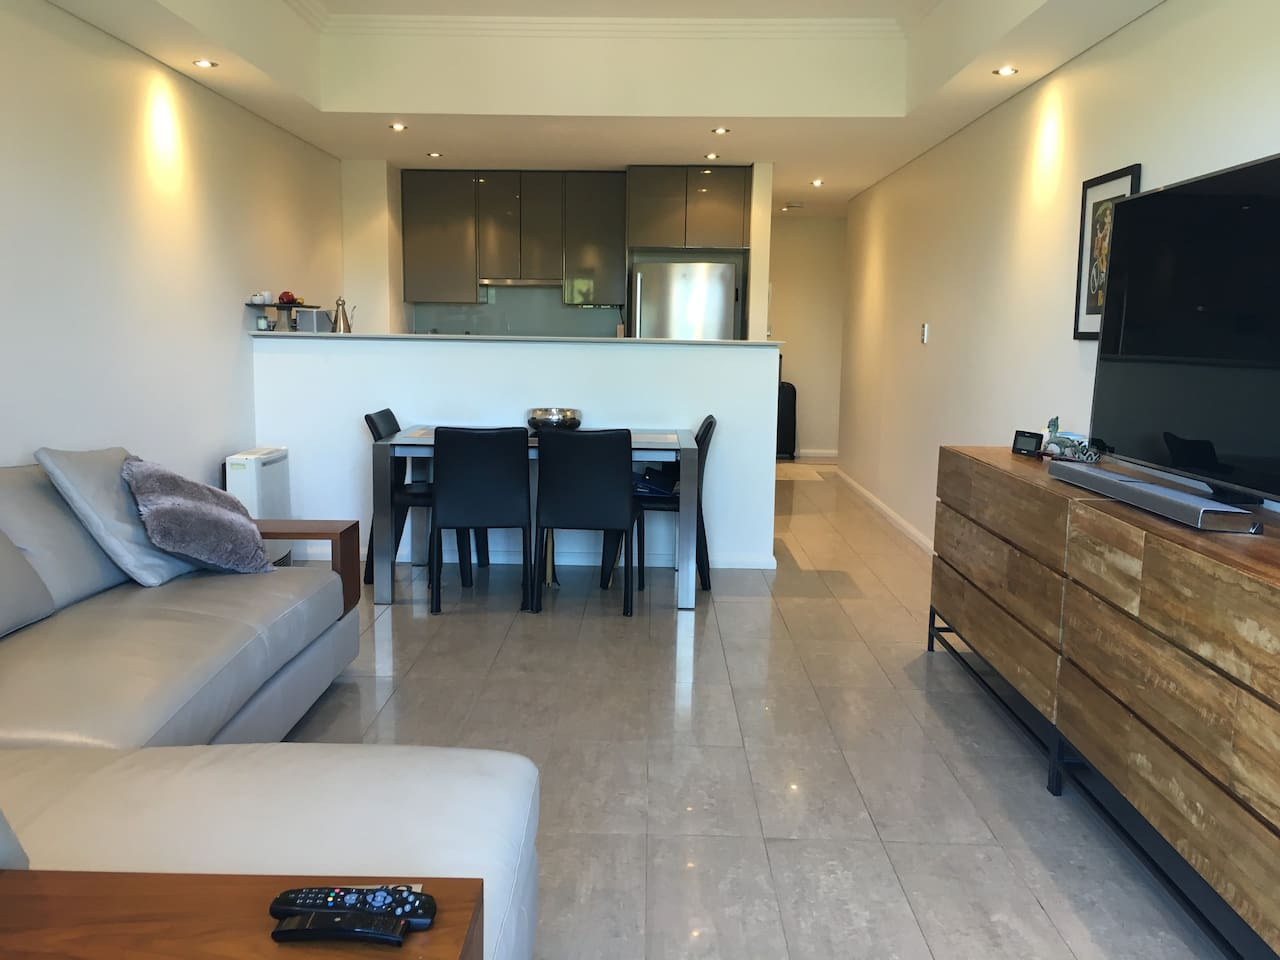 Modern security apartment with everything you need - Aircon, gas heating, modern luxury fitout, large 4K TV with Netflix and Stan and 1 security underground car park,